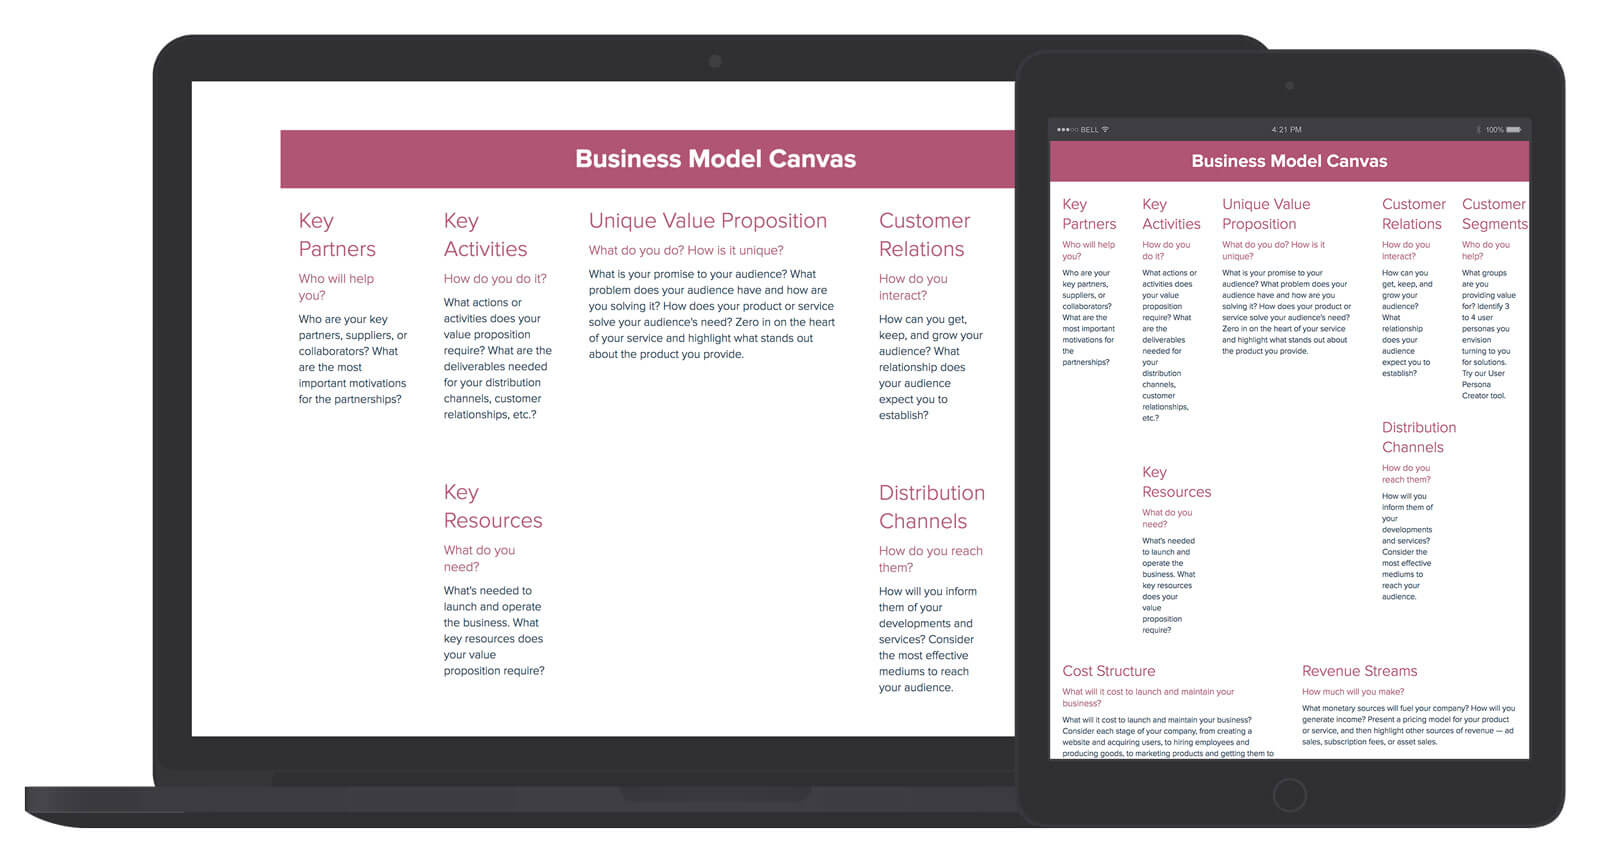 Business model canvas template and examples xtensio pin it on pinterest xtensio small business business model canvas wajeb